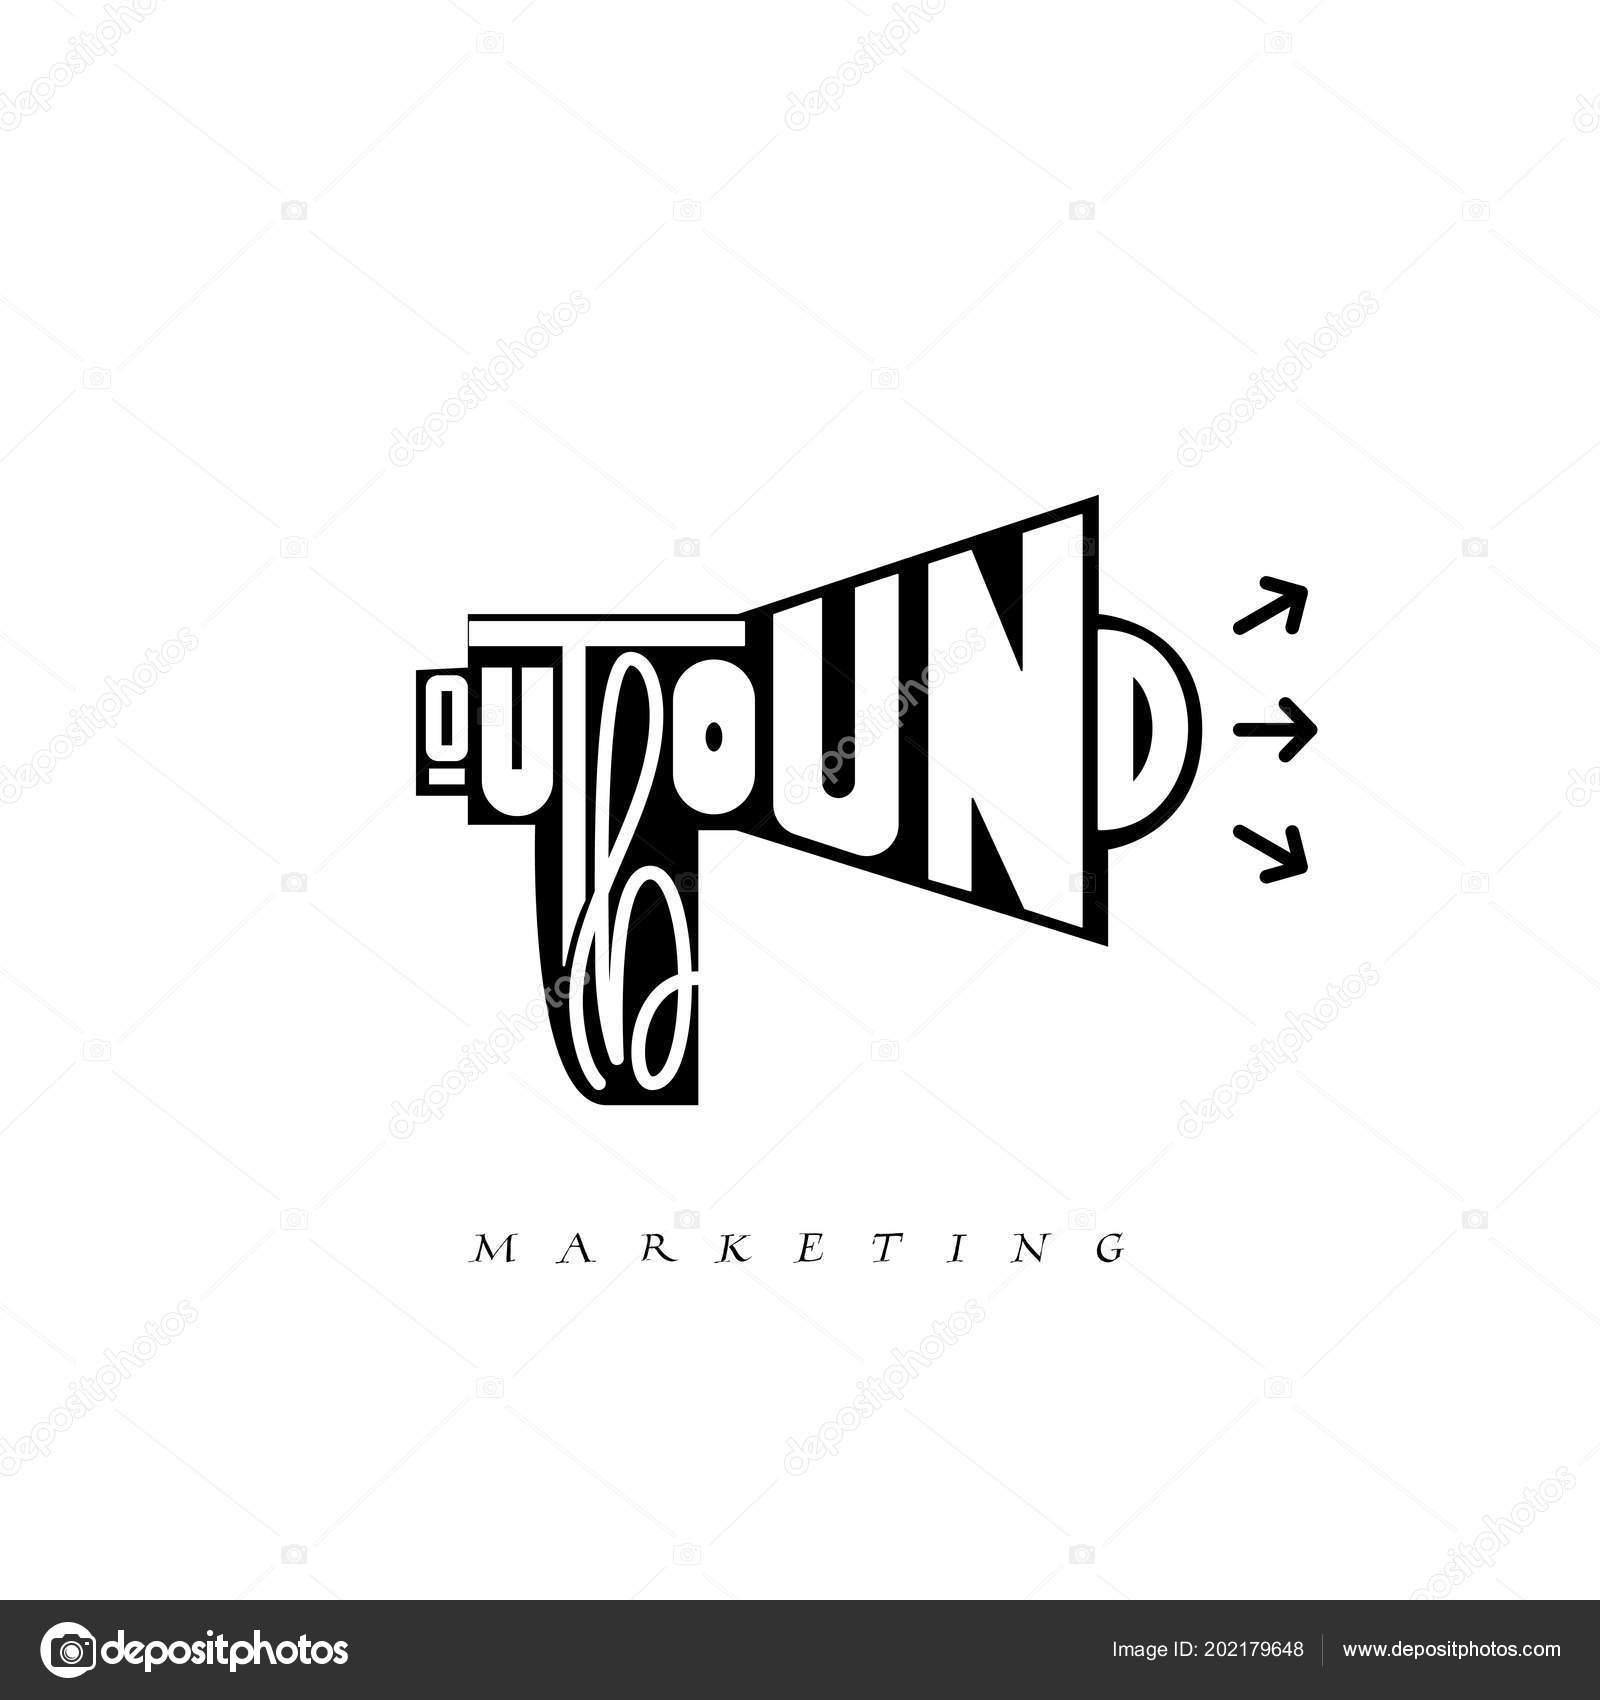 outbound marketing concept vector business illustration offline or interruption marketing background stock vector c zao4nik 202179648 depositphotos